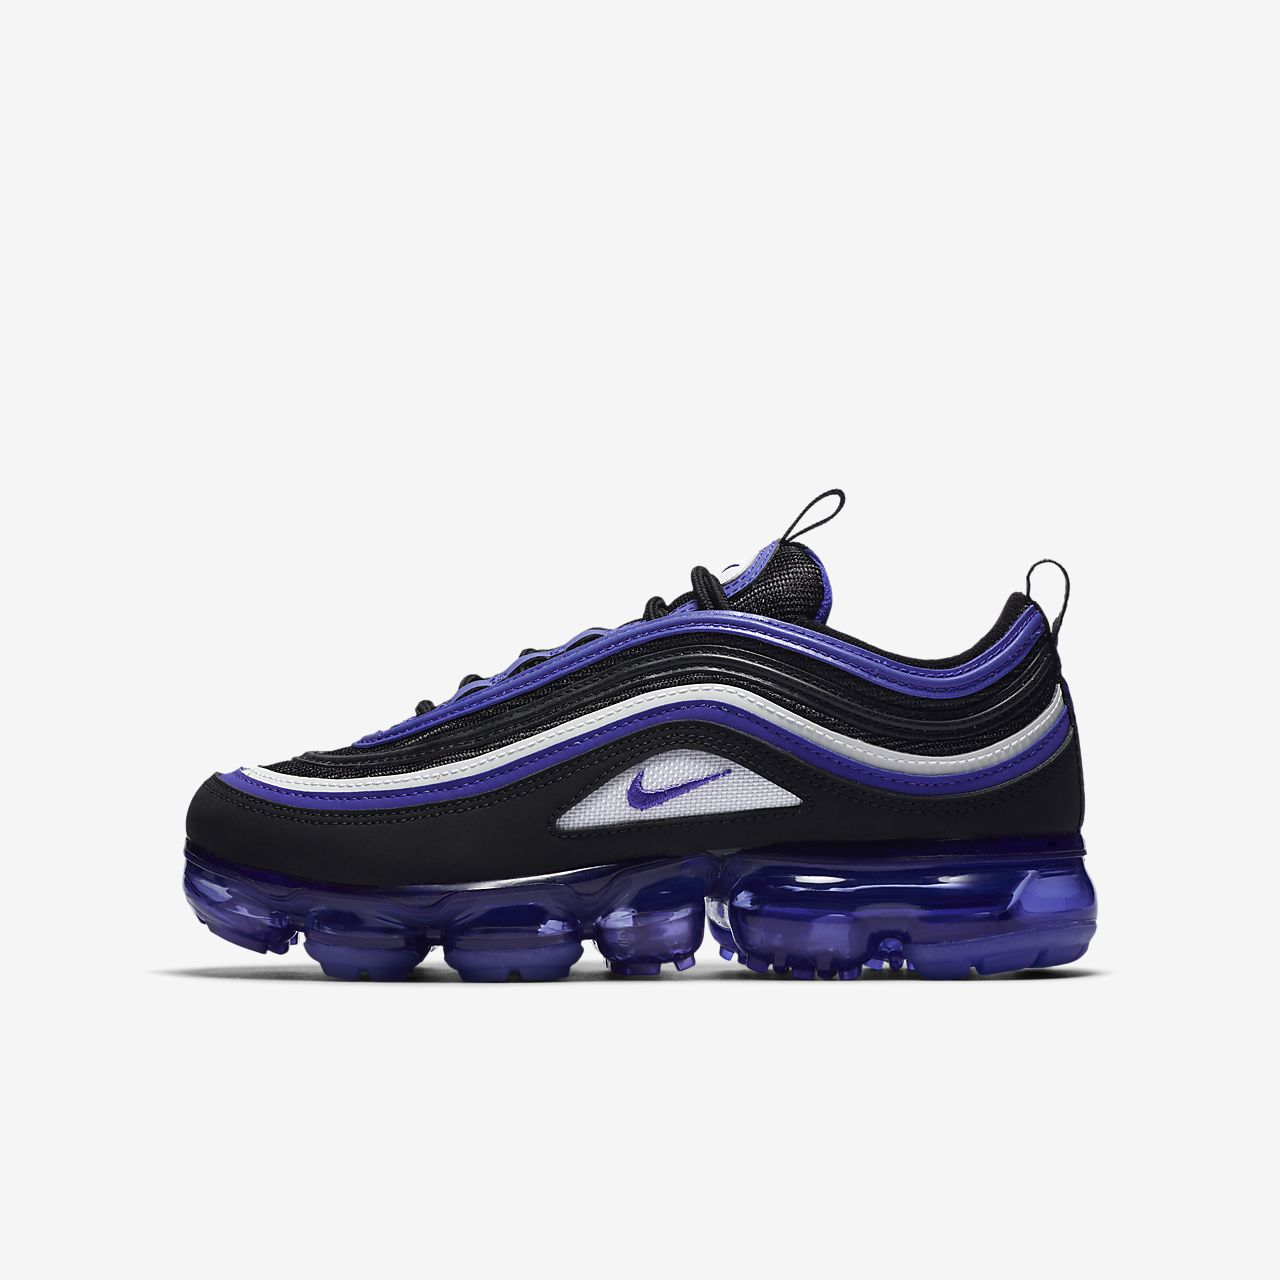 a40c9d4b48ba37 Nike Air VaporMax 97 Big Kids  Shoe. Nike.com